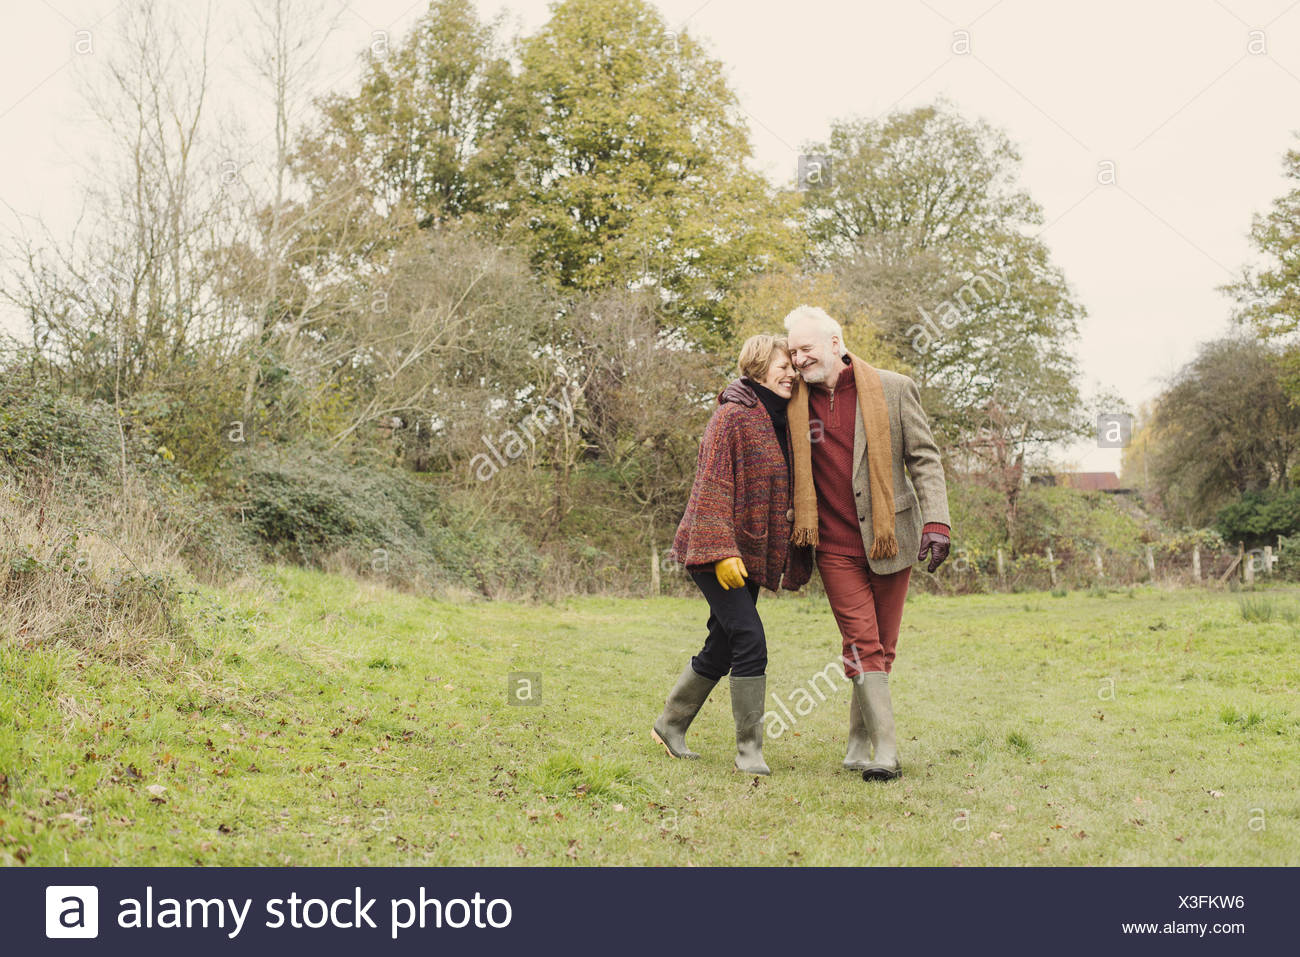 Couple walking in garden - Stock Image